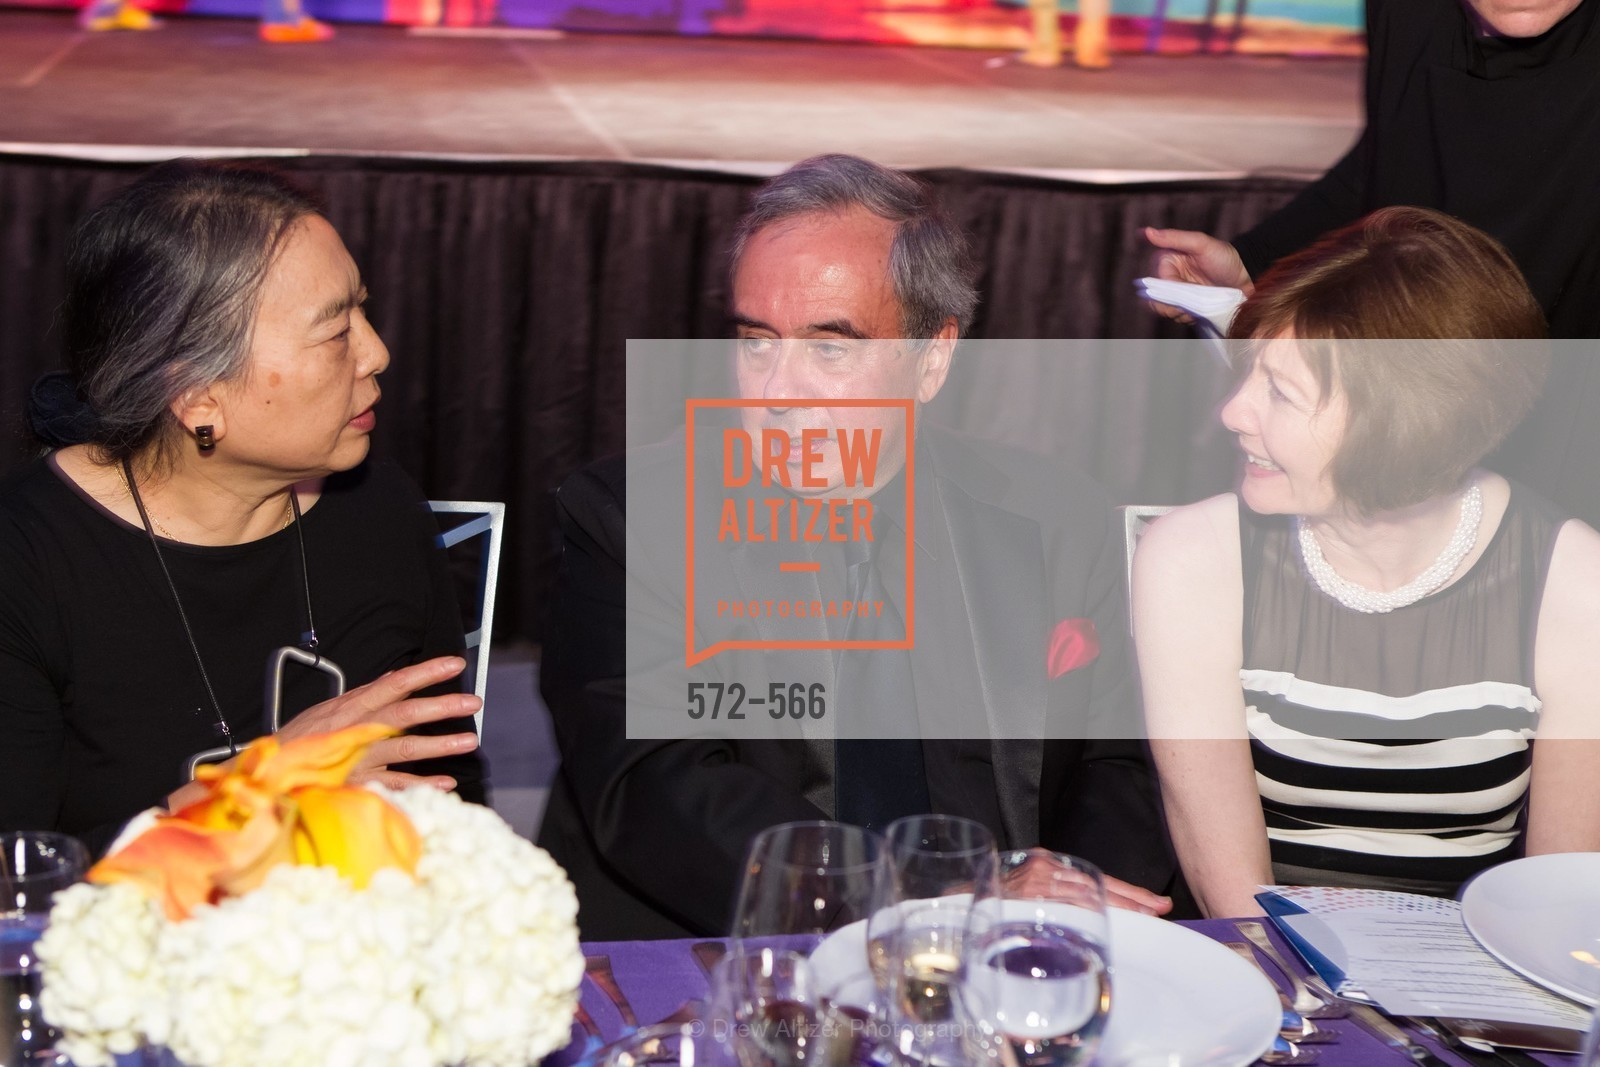 Hung Liu, SAN JOSE MUSEUM OF ART'S Spectrum Gala - 45th Anniversary, US, September 13th, 2014,Drew Altizer, Drew Altizer Photography, full-service event agency, private events, San Francisco photographer, photographer California